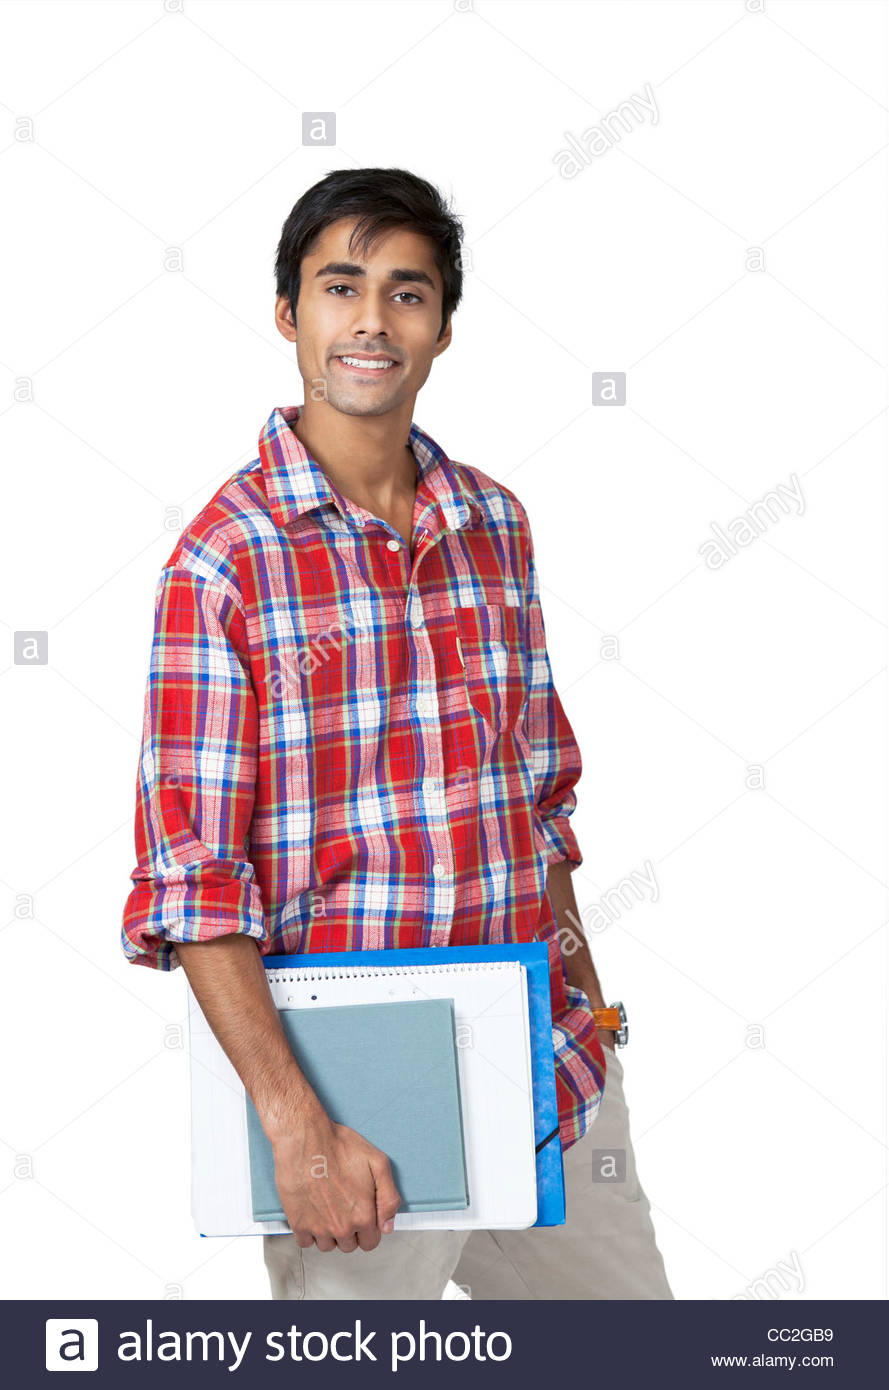 Cute college guy - Stock Image